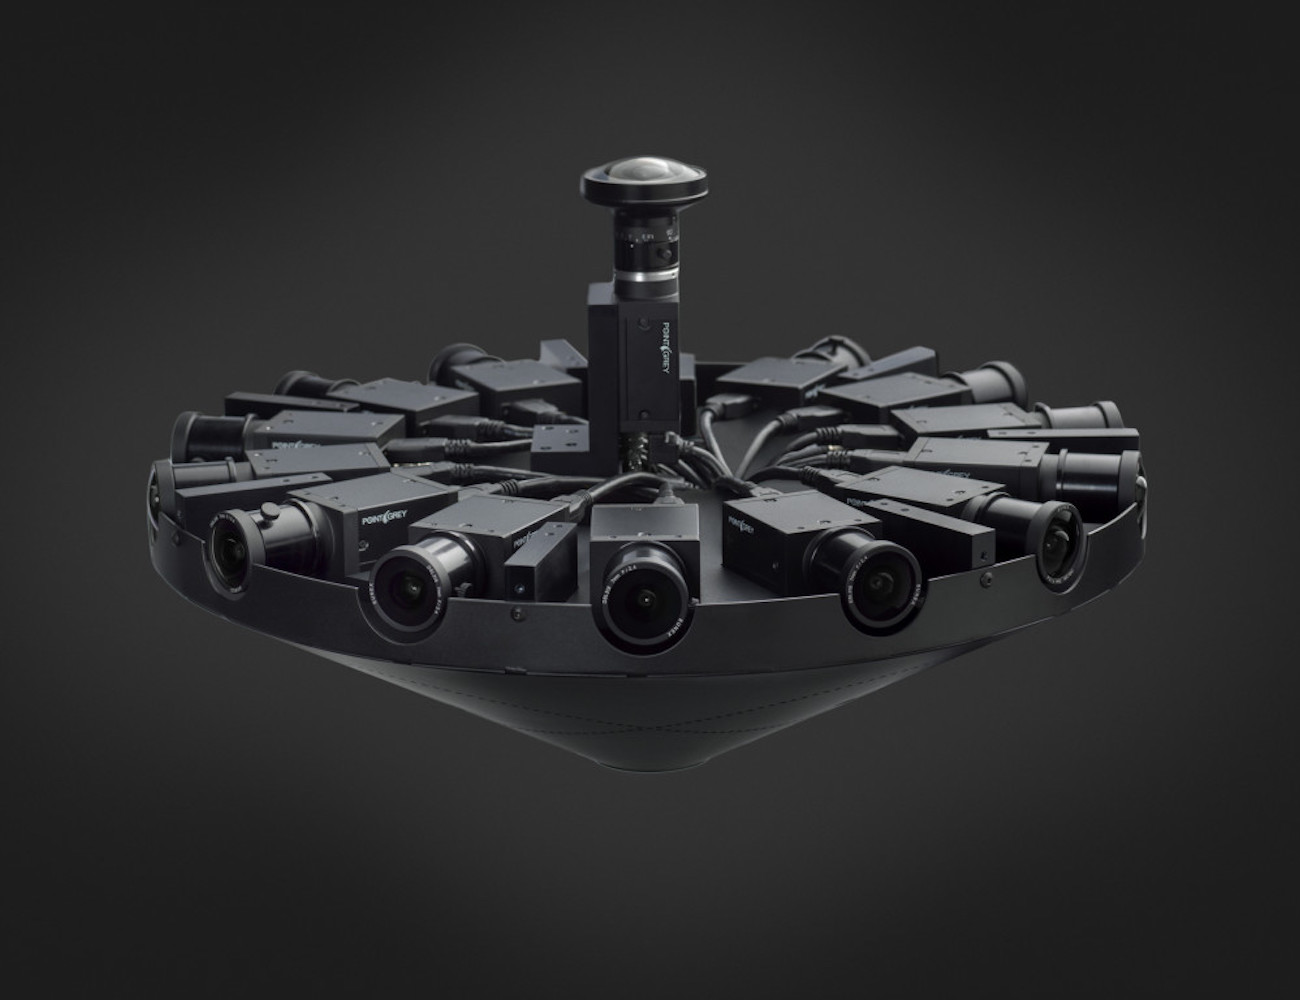 Facebook Surround 360 – High Quality 3D-360 Video Capture System